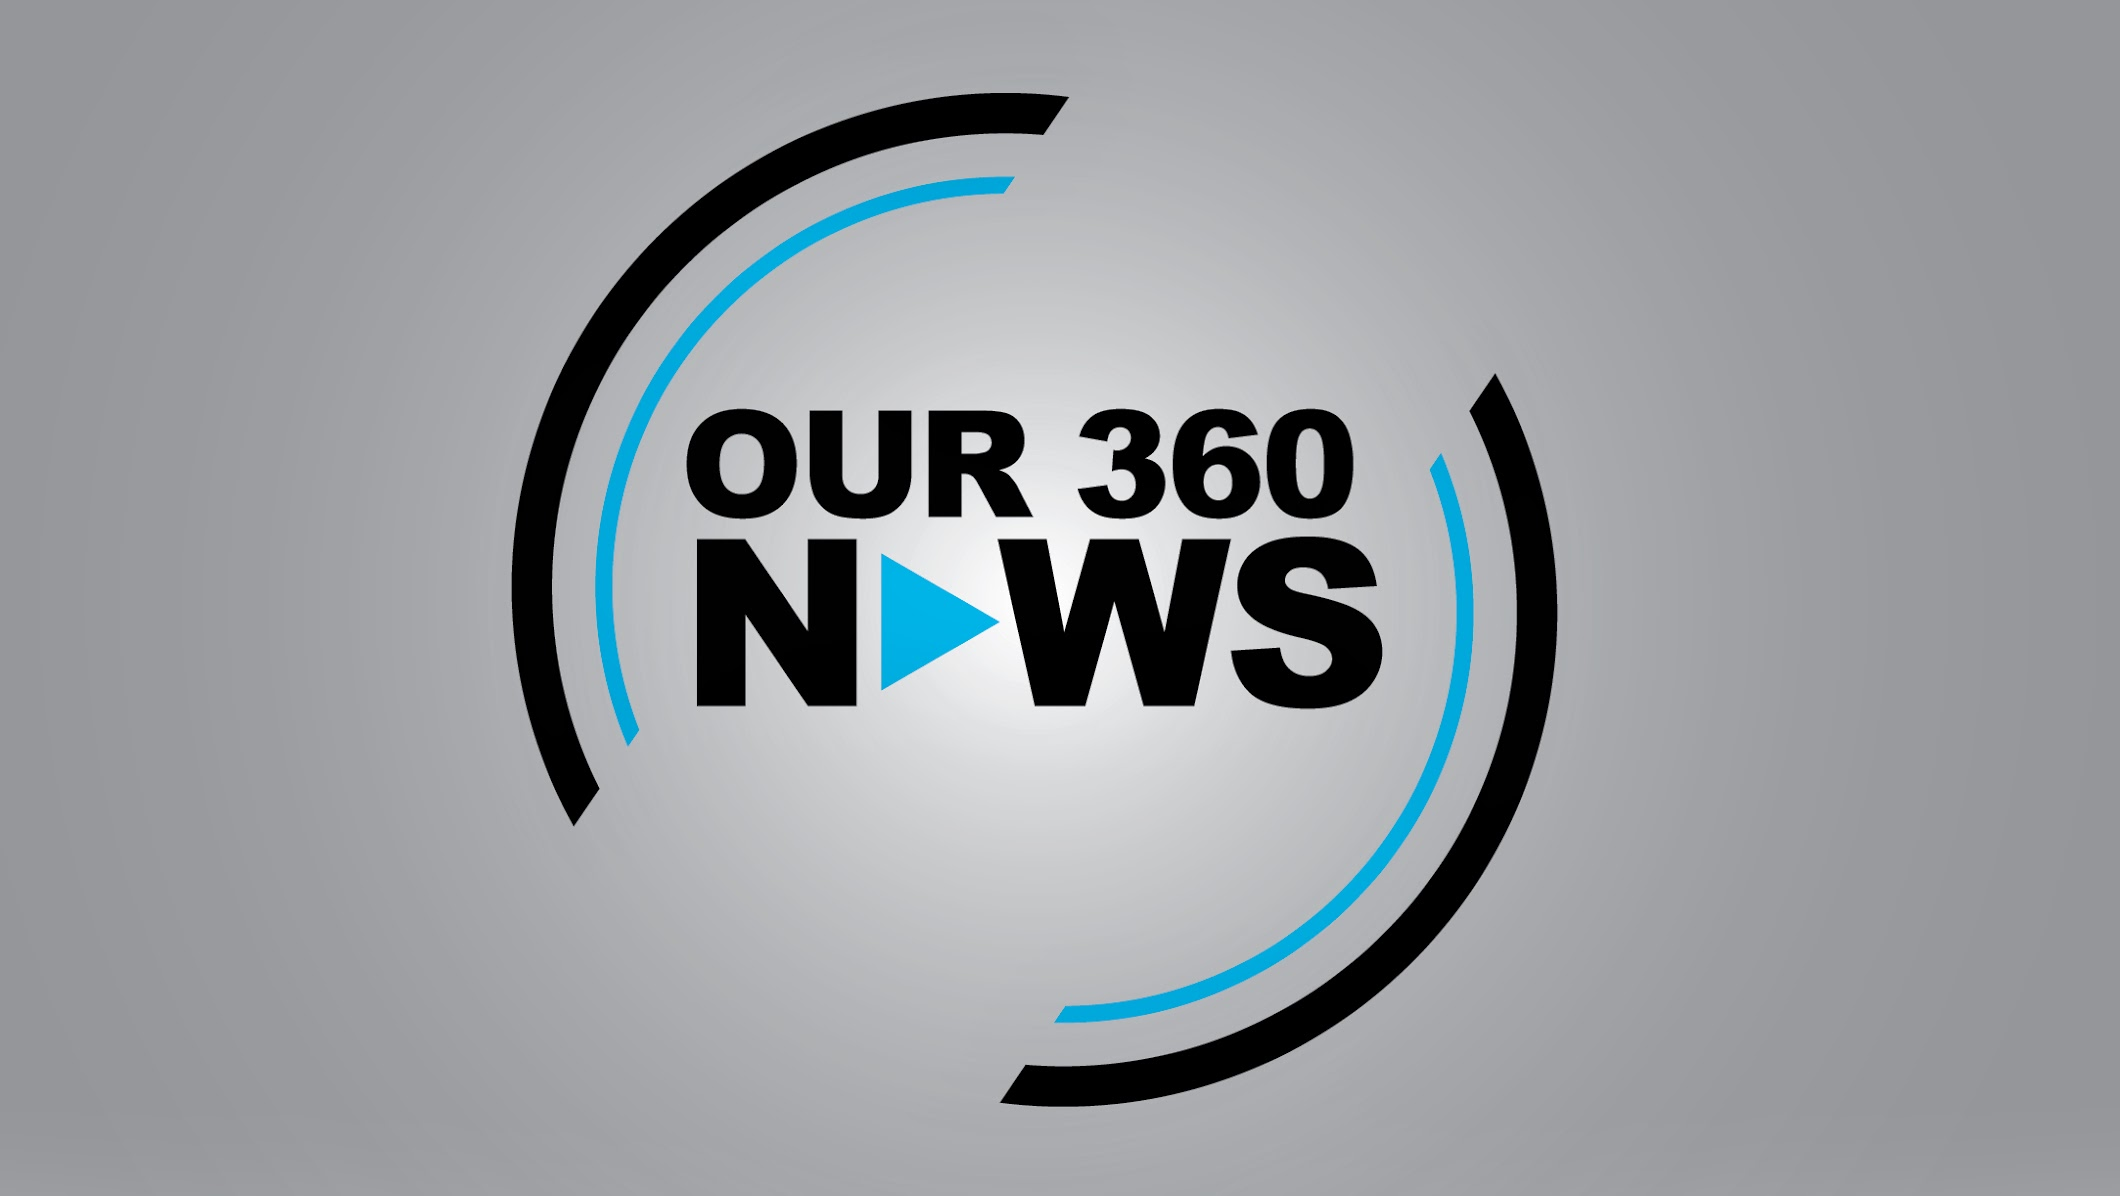 Our 360 News